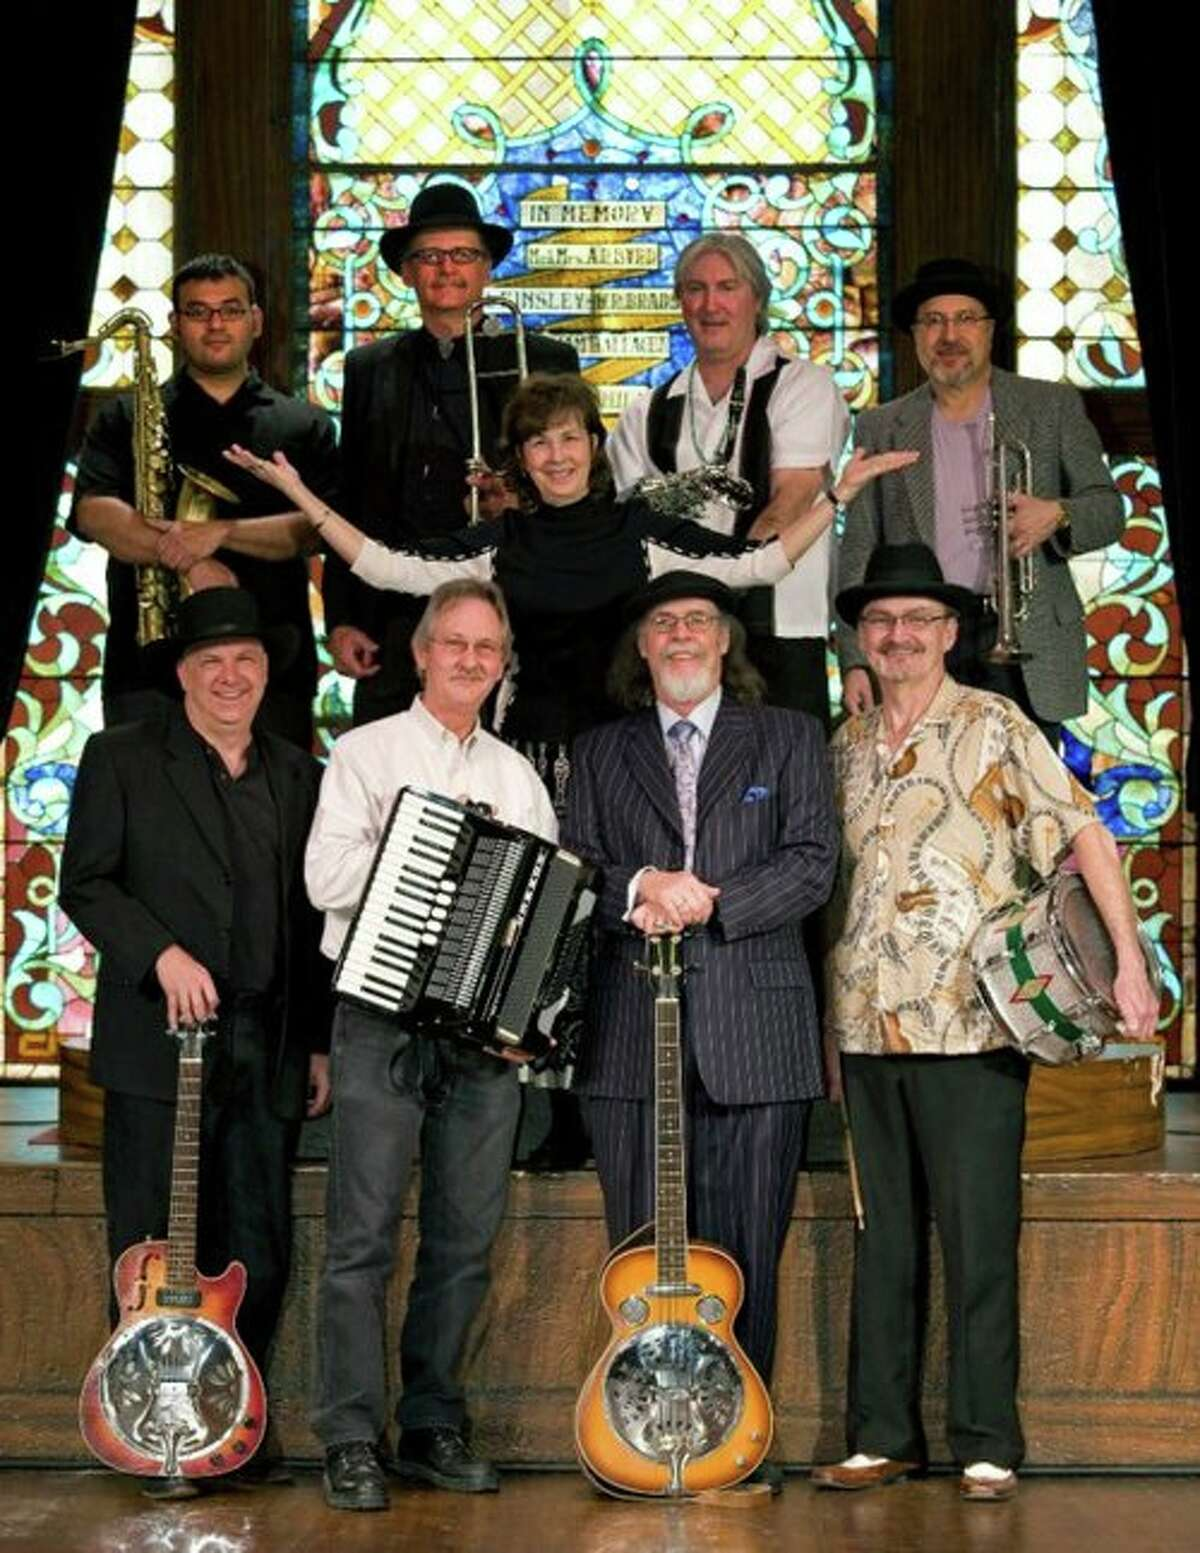 Miss Nessie, center, and the Ear Food Orchestra will perform at a gospel brunch at John T. Floore's Country Store in Helotes for Easter, April 5, 2015.